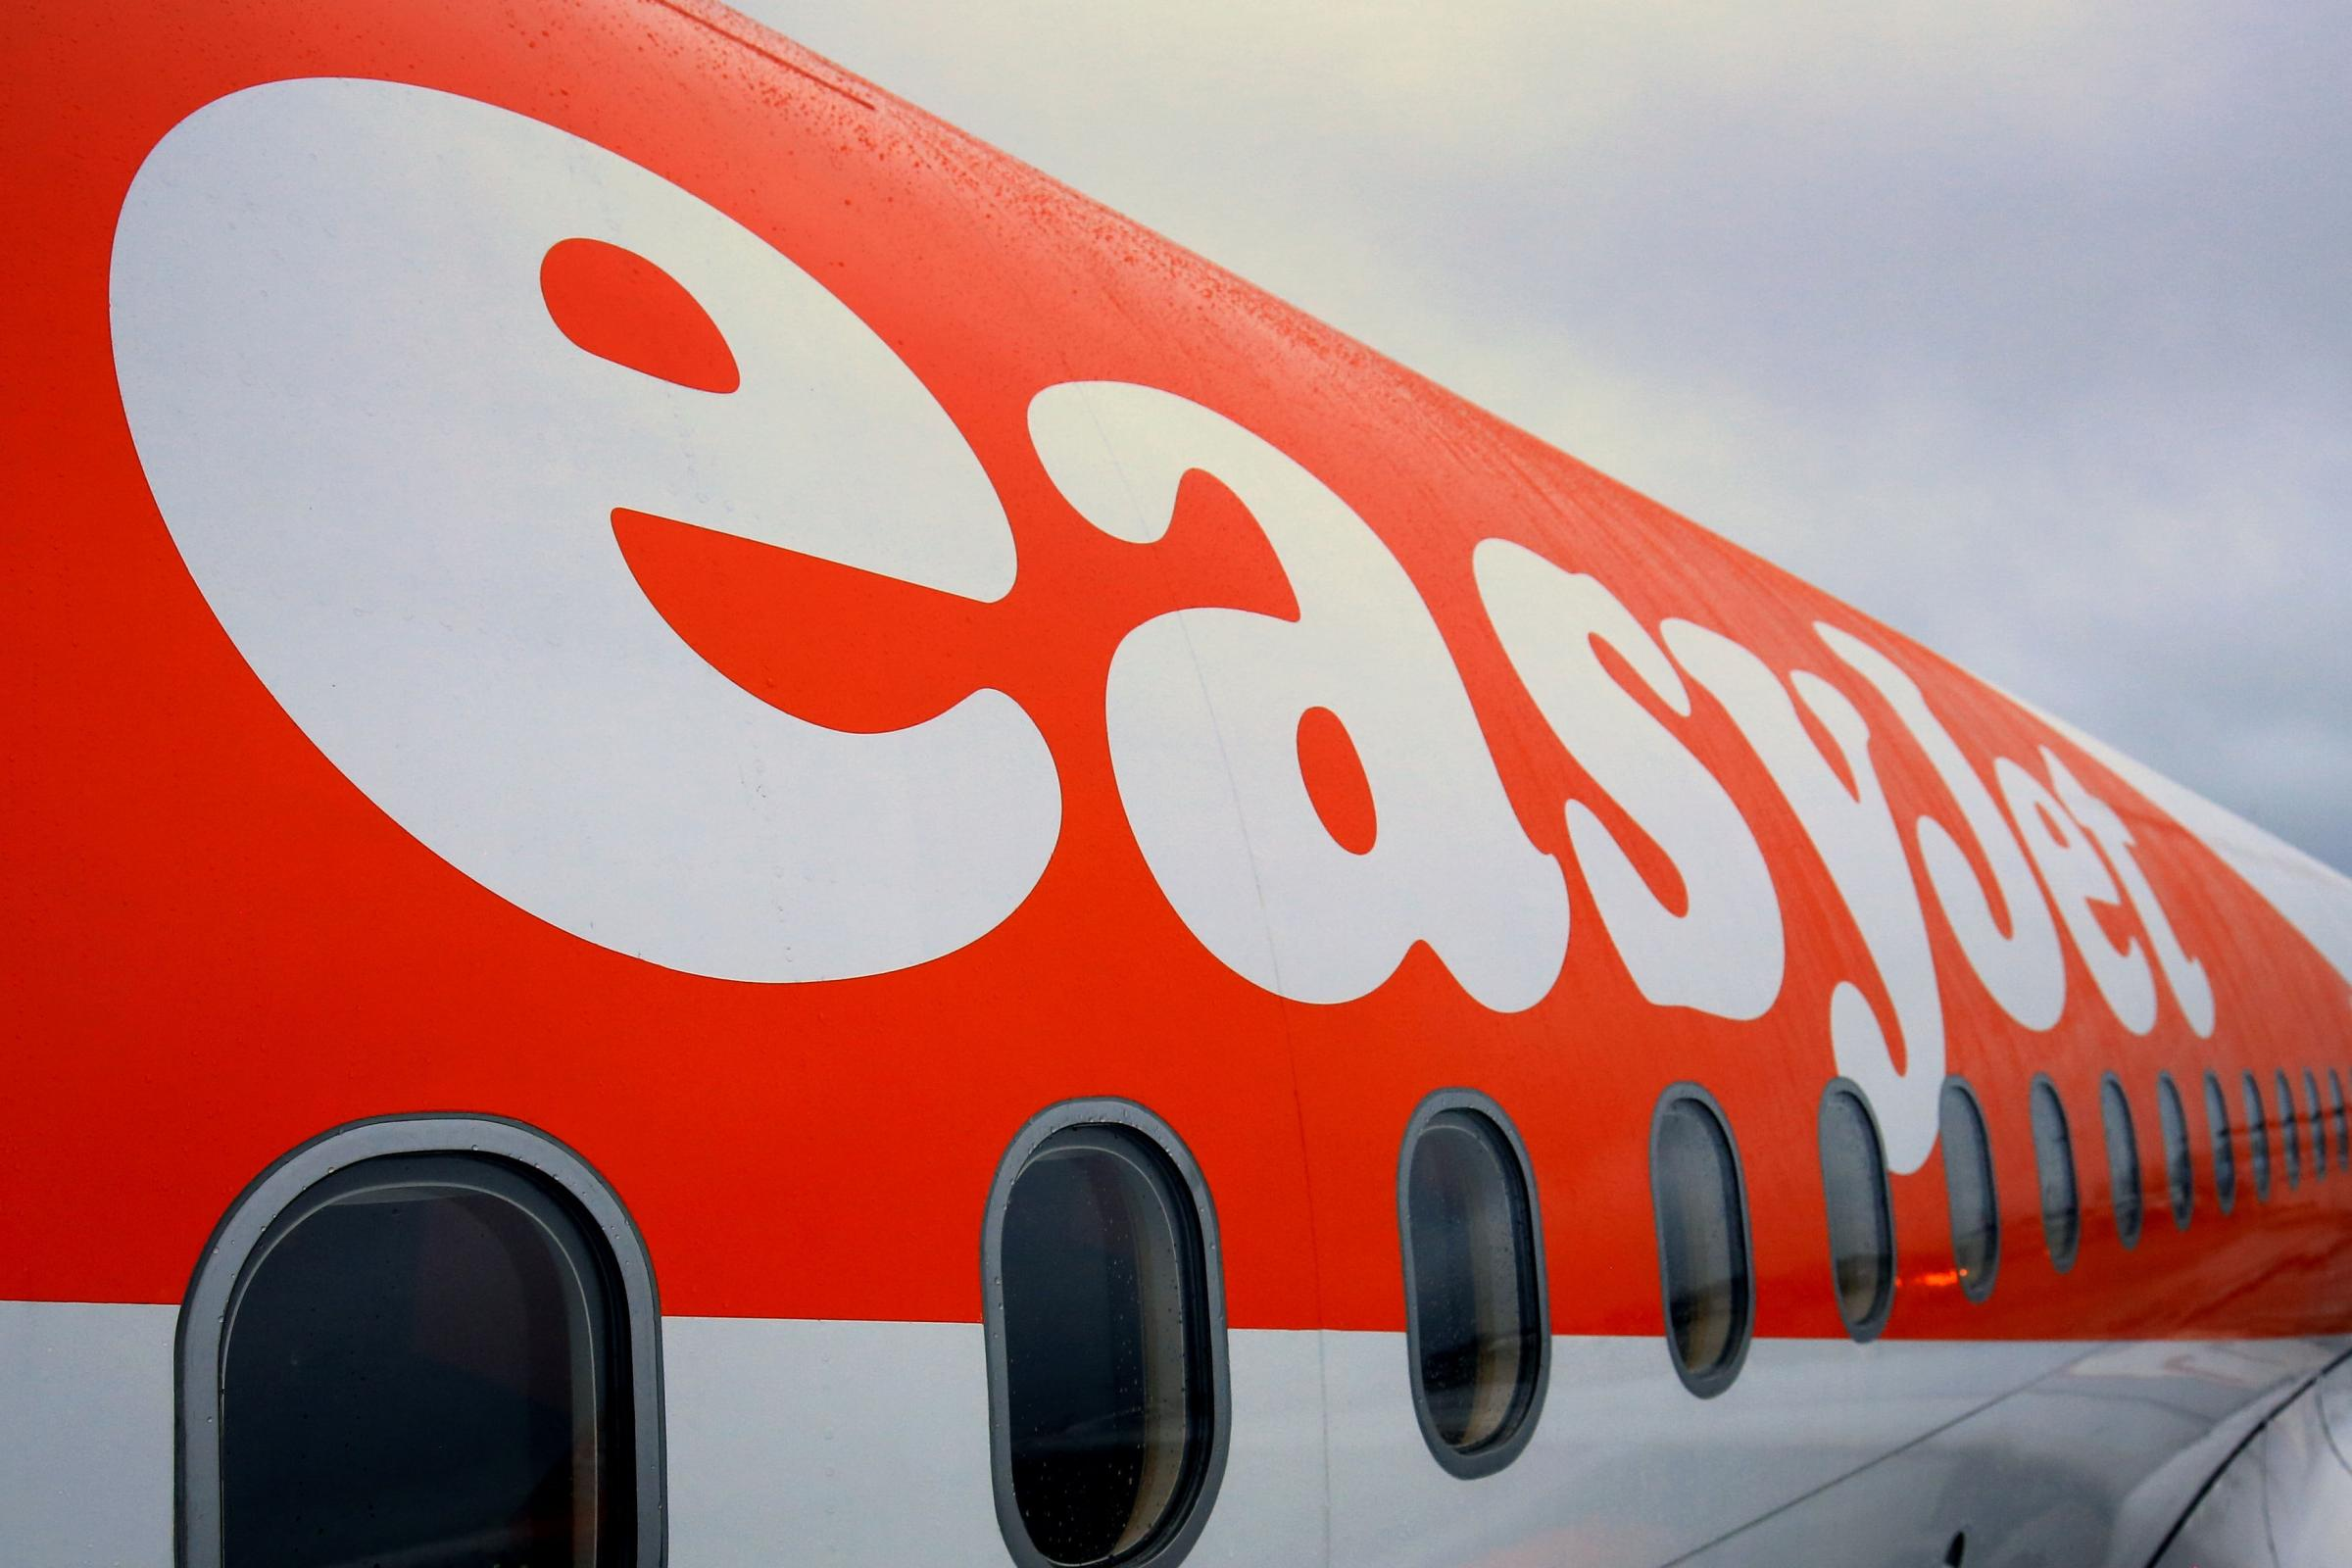 EasyJet has added to fears over a summer of travel chaos as it revealed nearly 1,300 flights were cancelled blast month with no end in sight to air traffic control strike action (Gareth Fuller/PA)